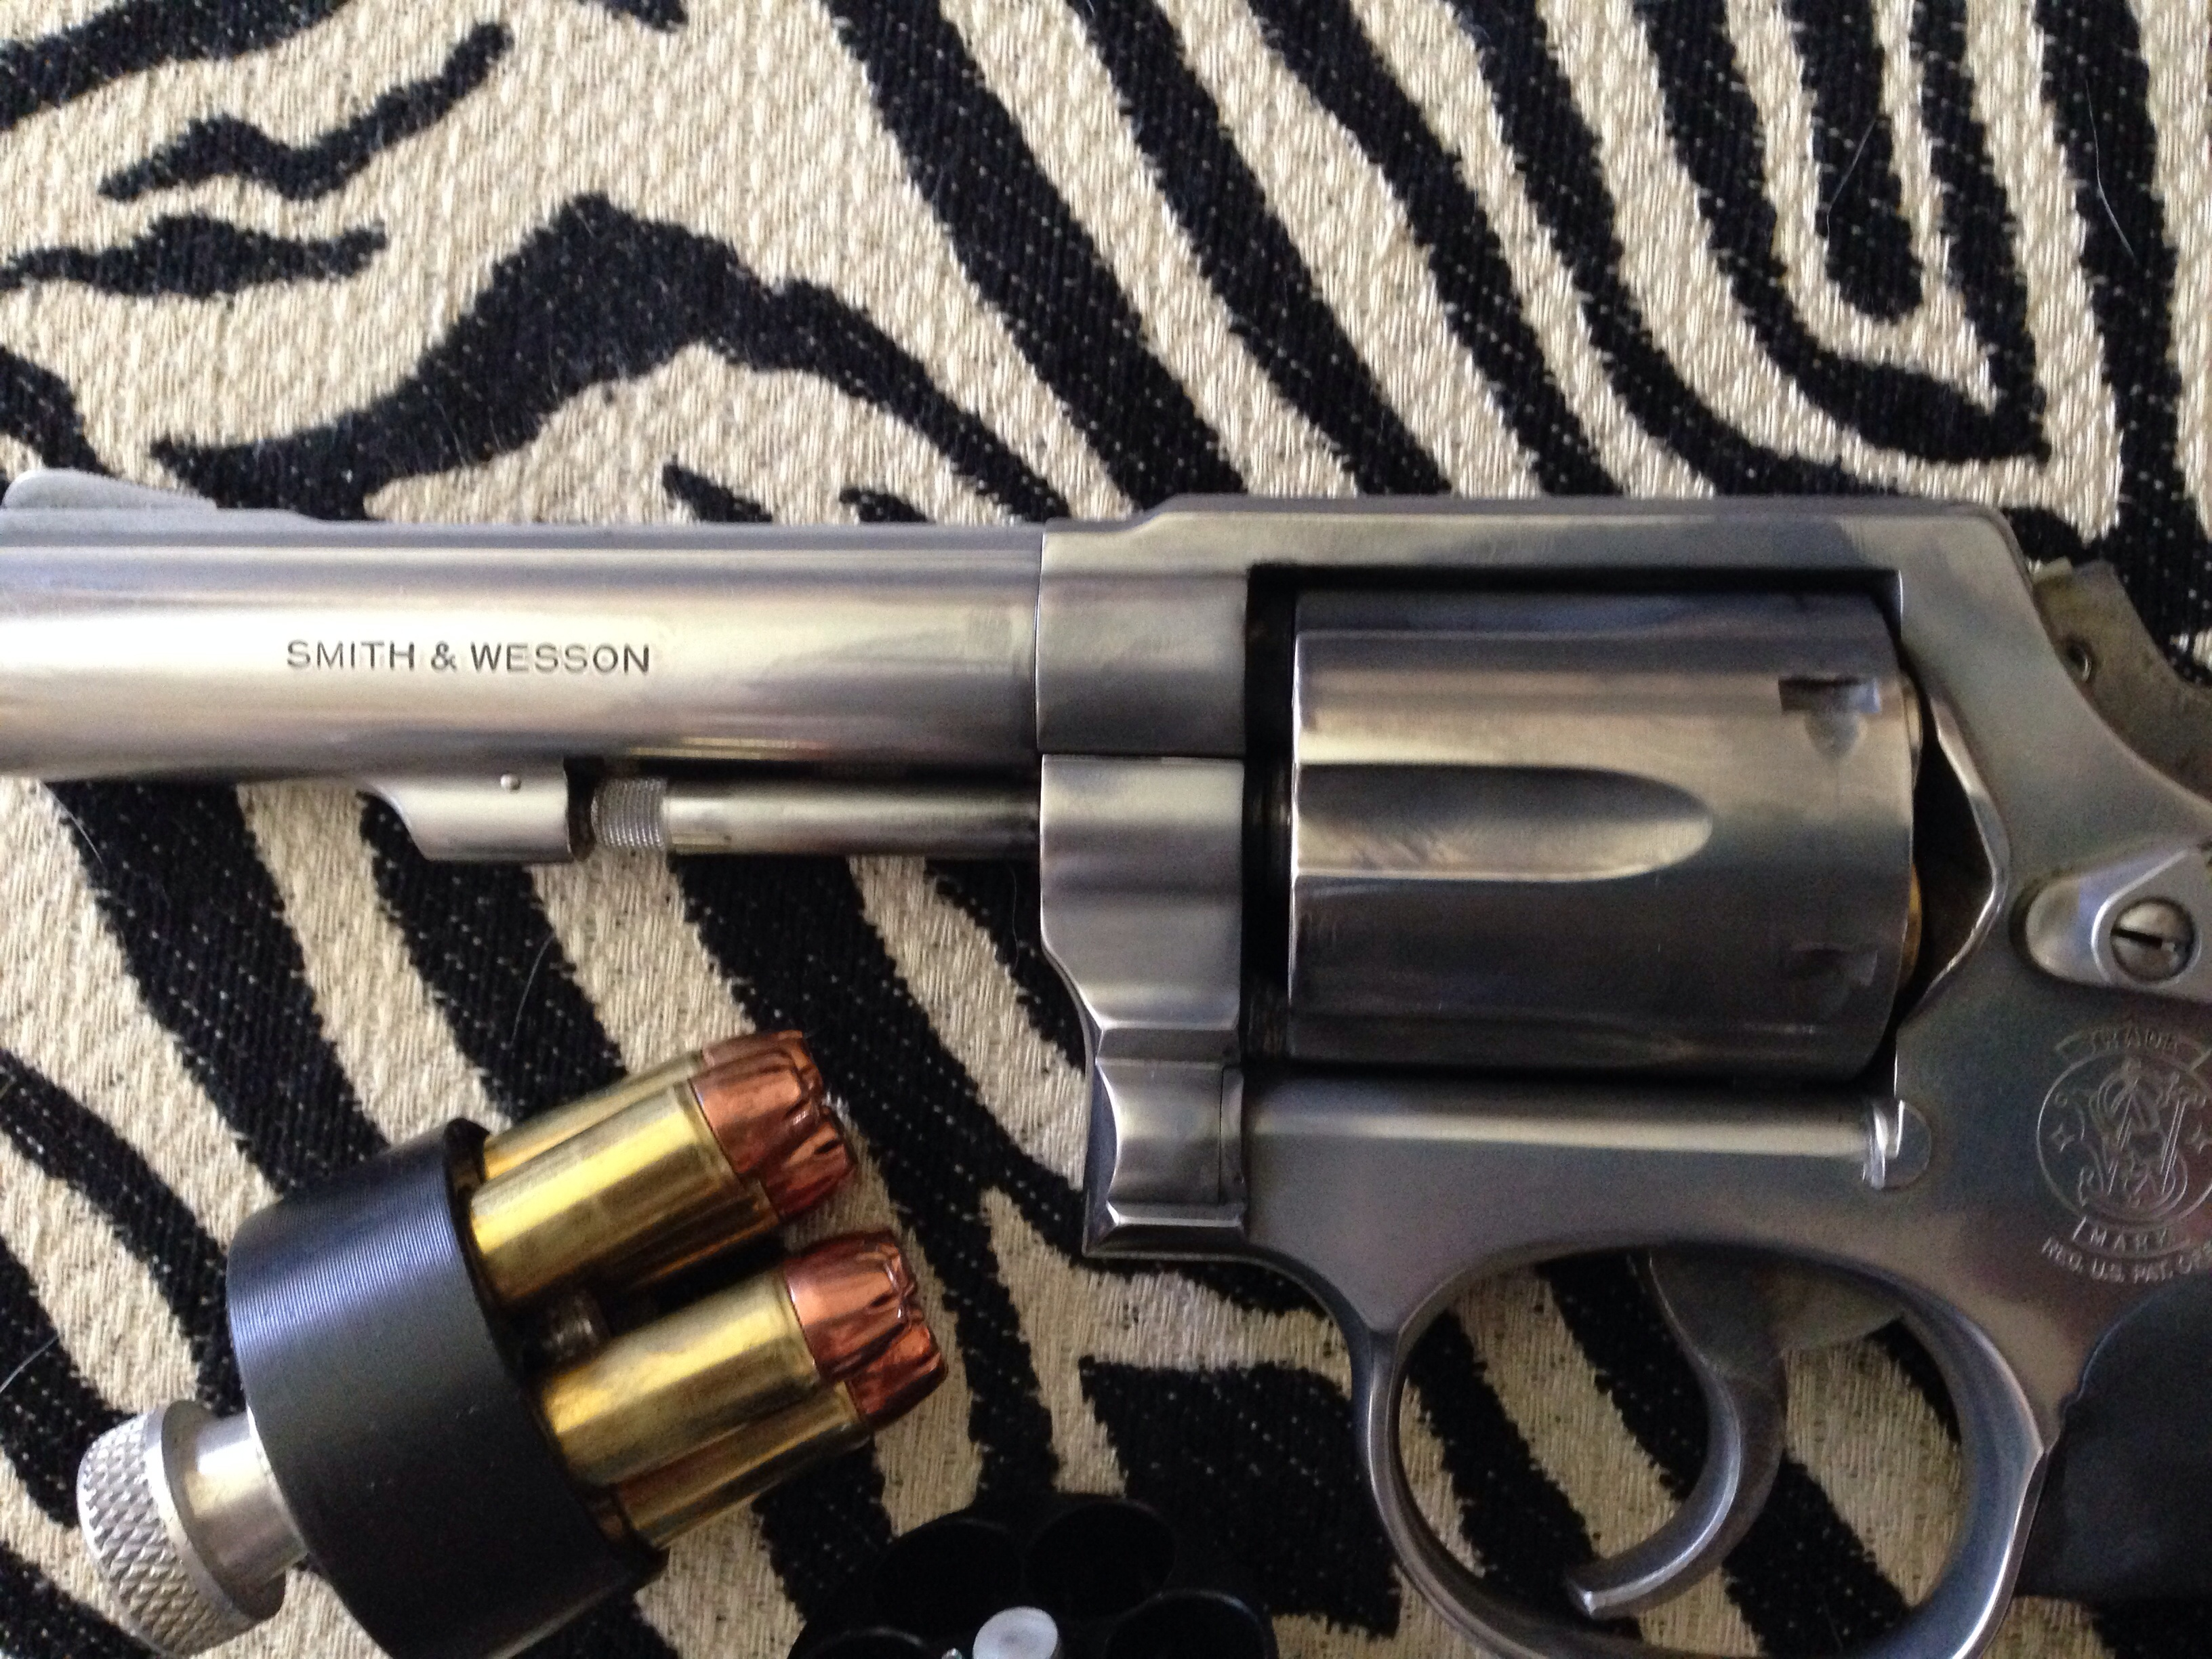 Wouldn't give a plugged nickel for a S&W revolver-image.jpg